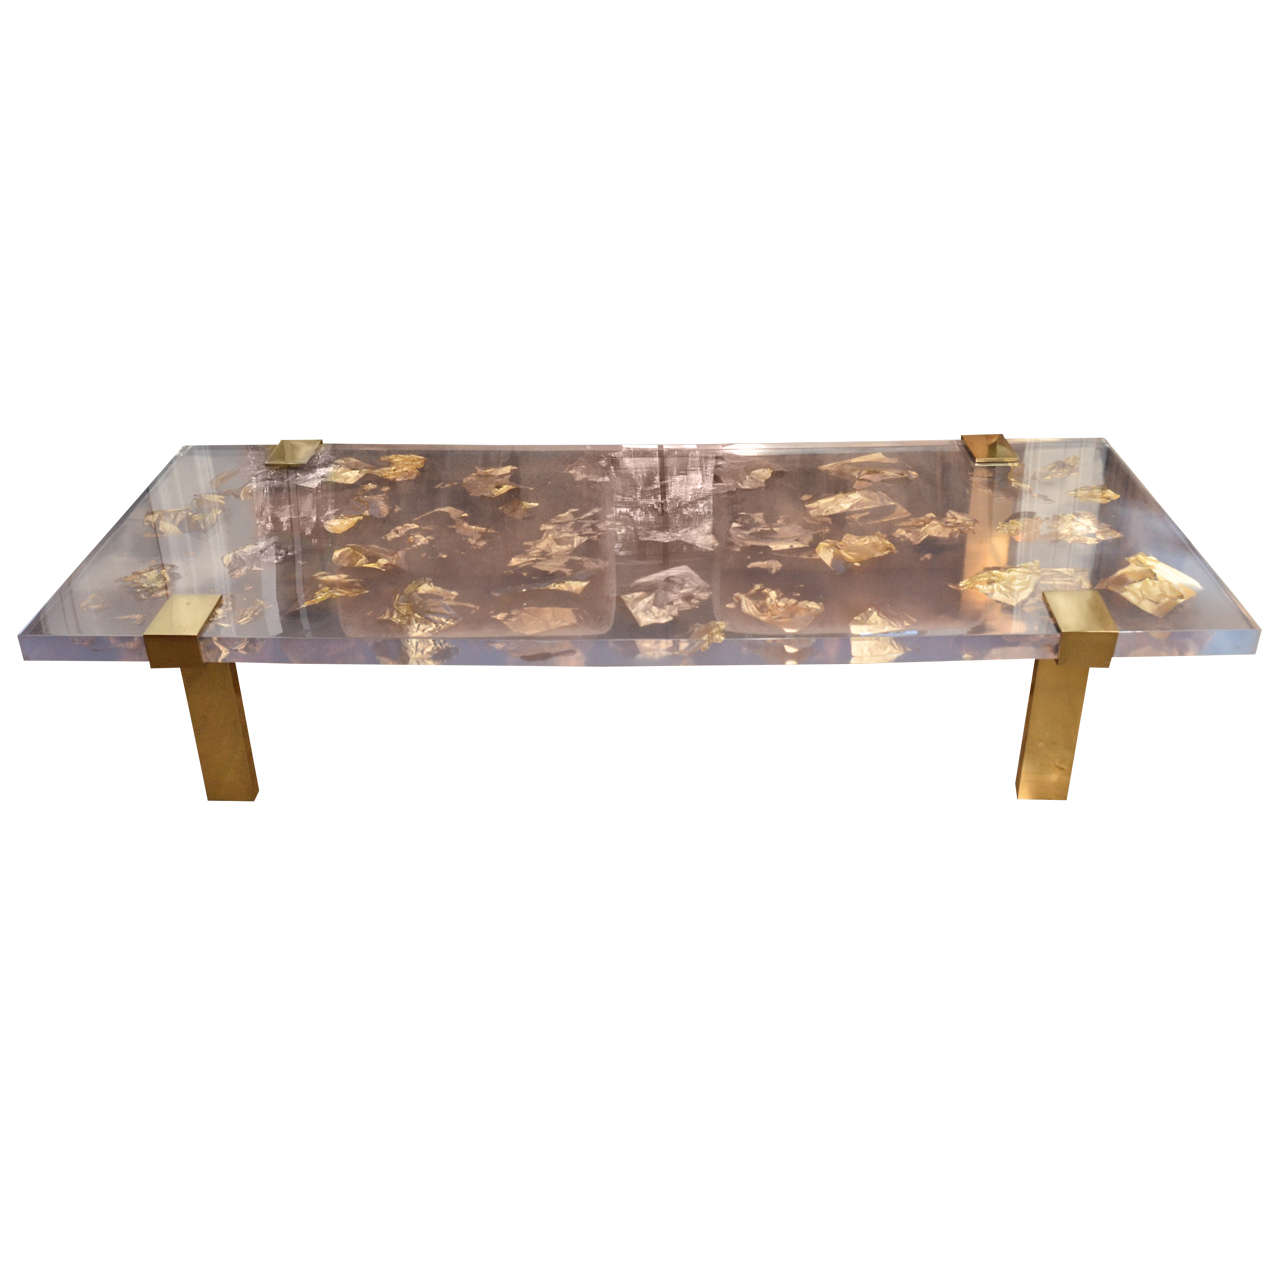 Contemporary Gold Leaf Inlay Coffee Table With Brass Frame At Stdibs